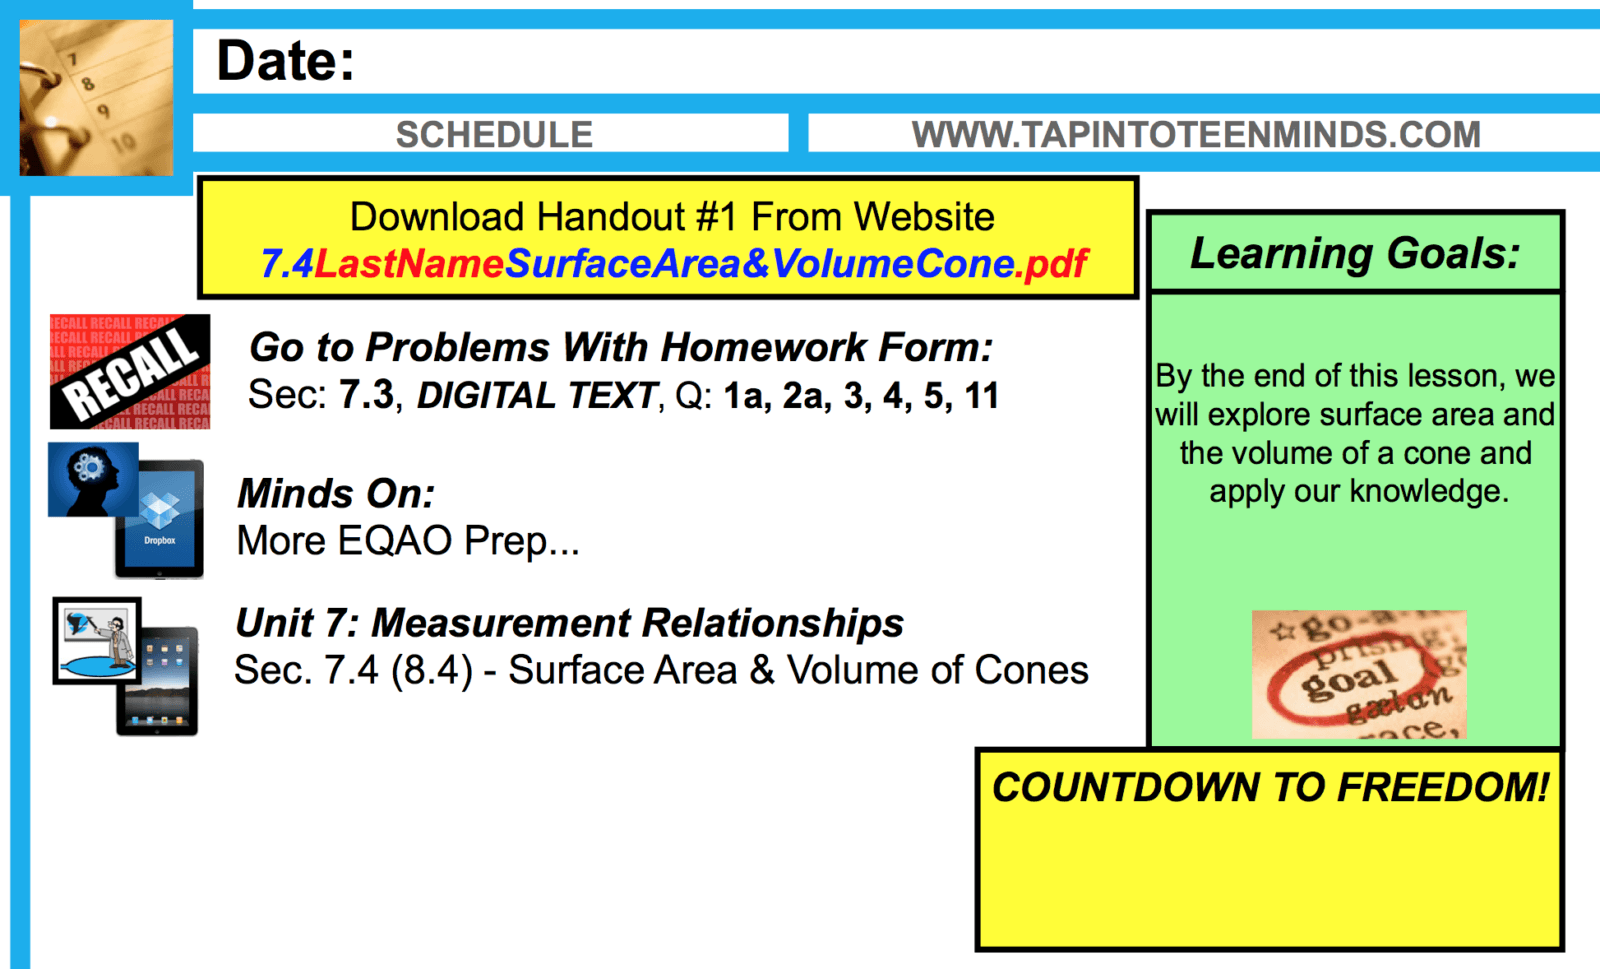 Surface Area And Volume Of A Cone Worksheet Tap Into Teen Minds